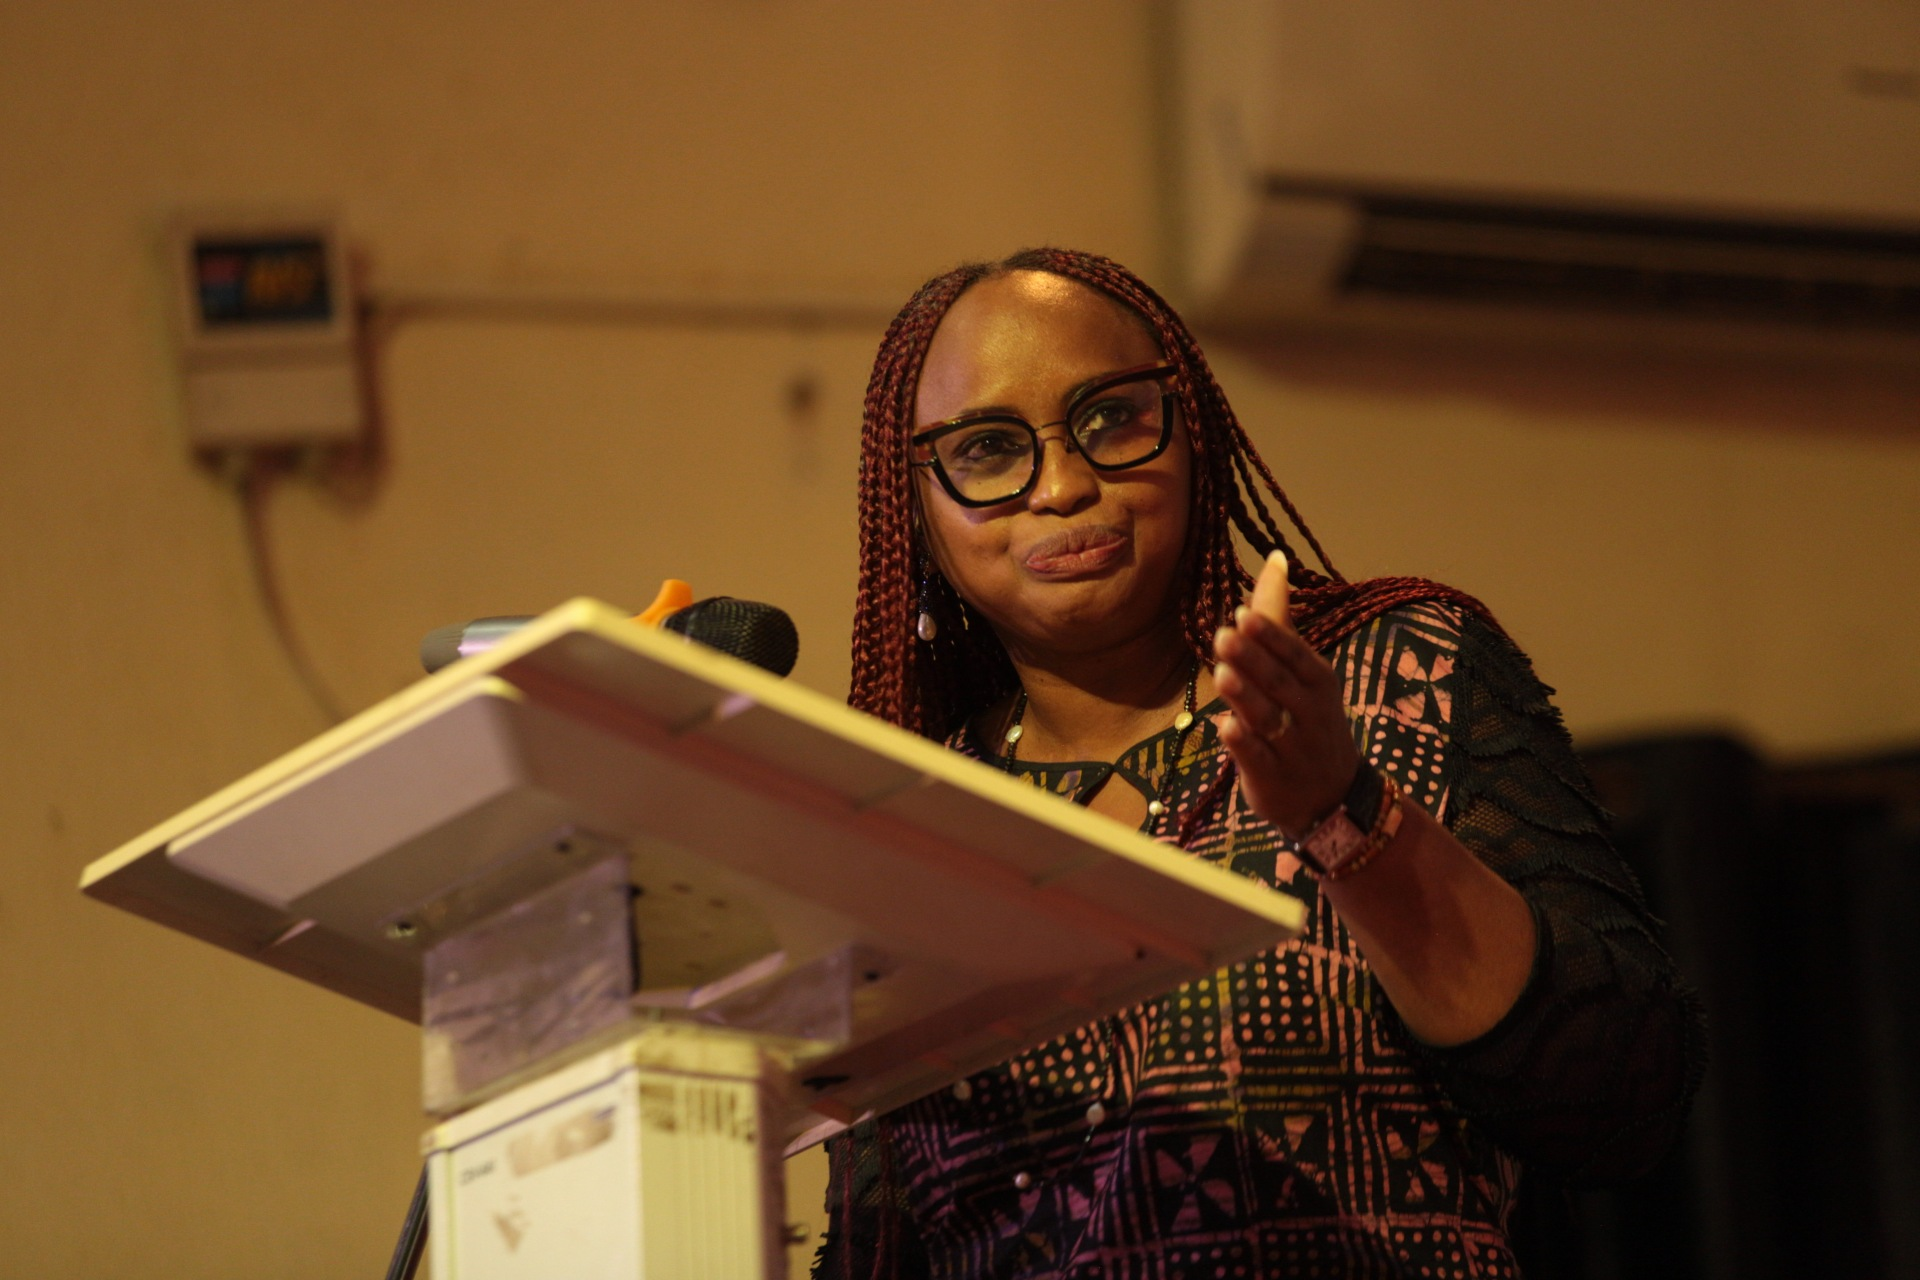 Arinola Oloko, one of the panelists at the event.